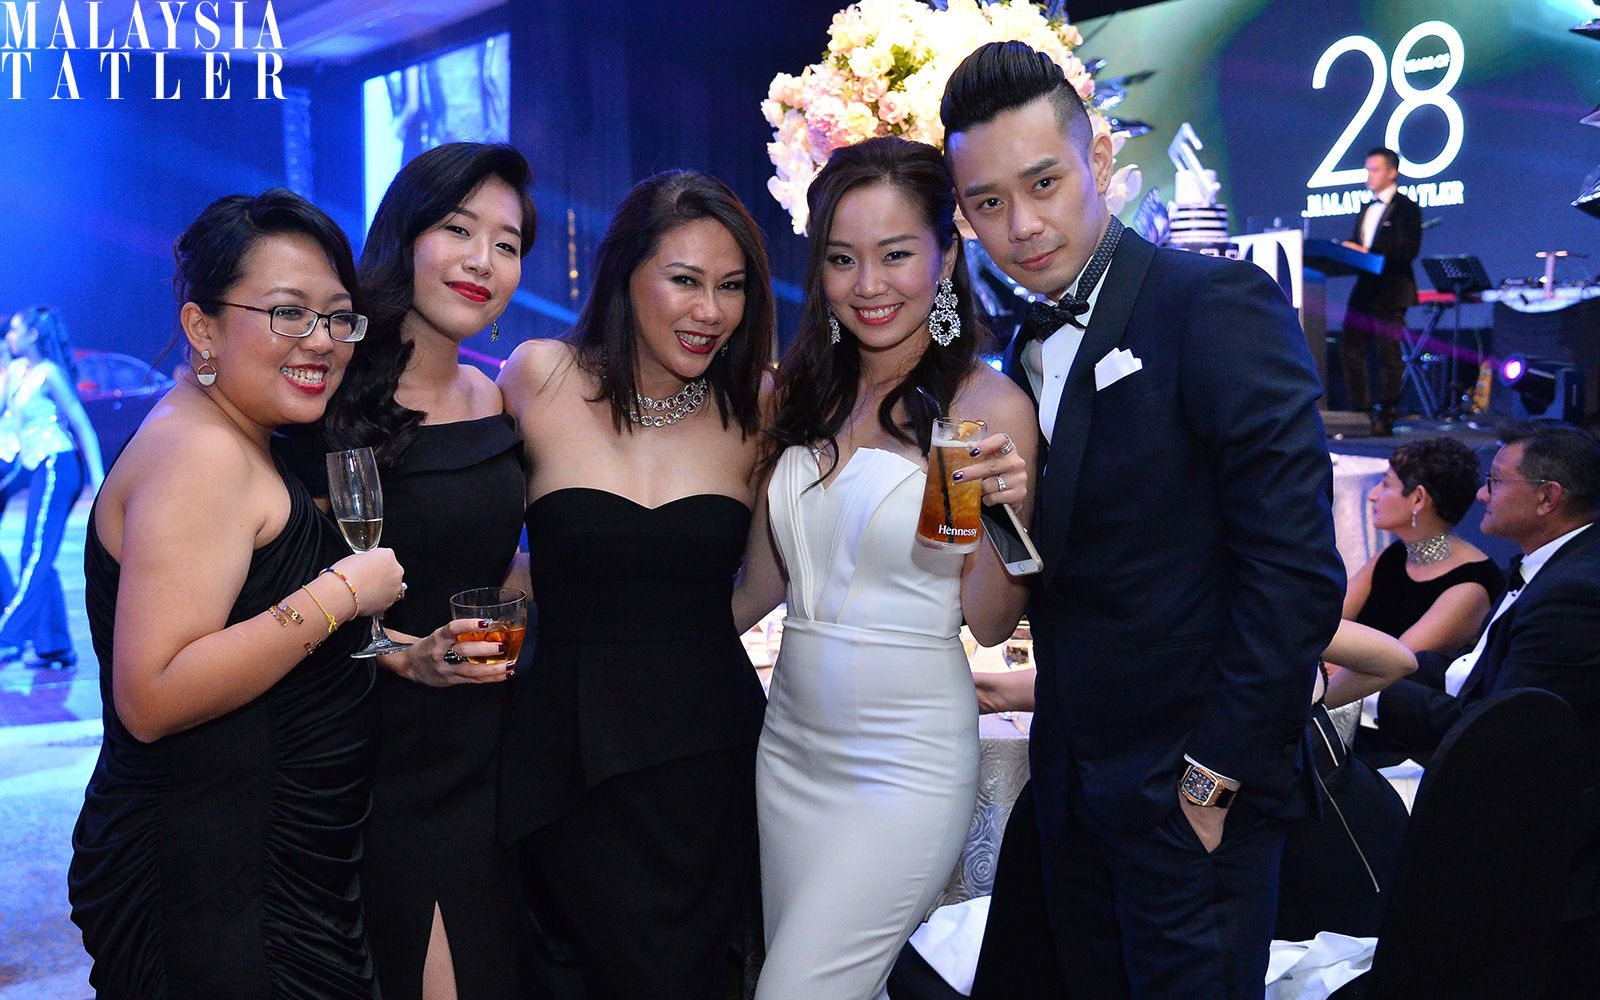 Lily Ong, Jean Goon, Michele Kwok, Jady Teoh and Mah Kok Wah